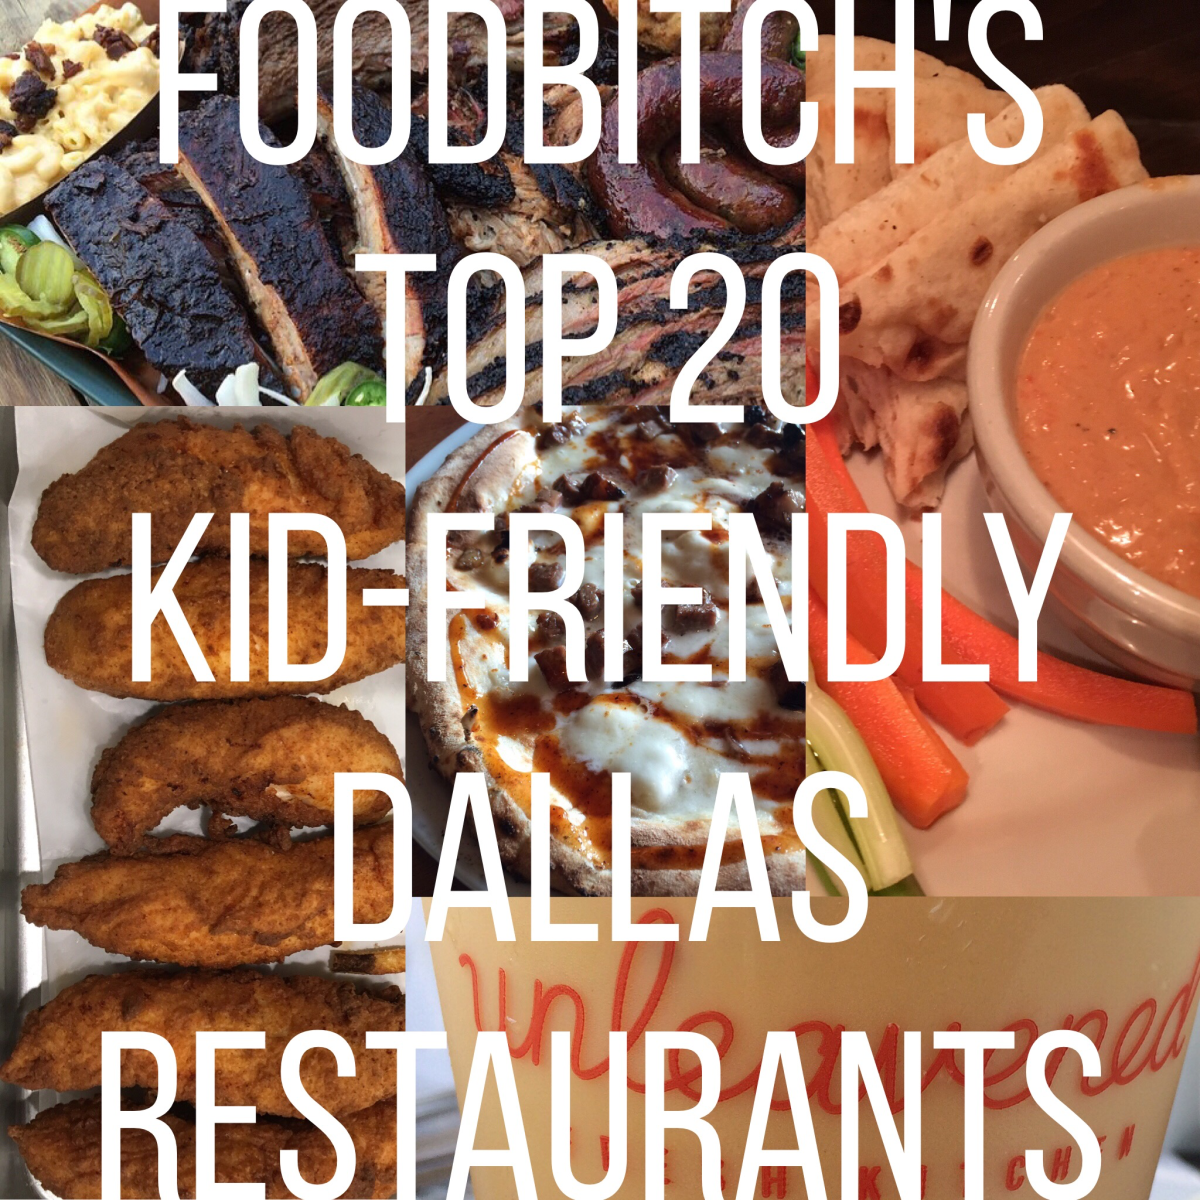 Fine dining archives foodbitch for Kid friendly restaurants